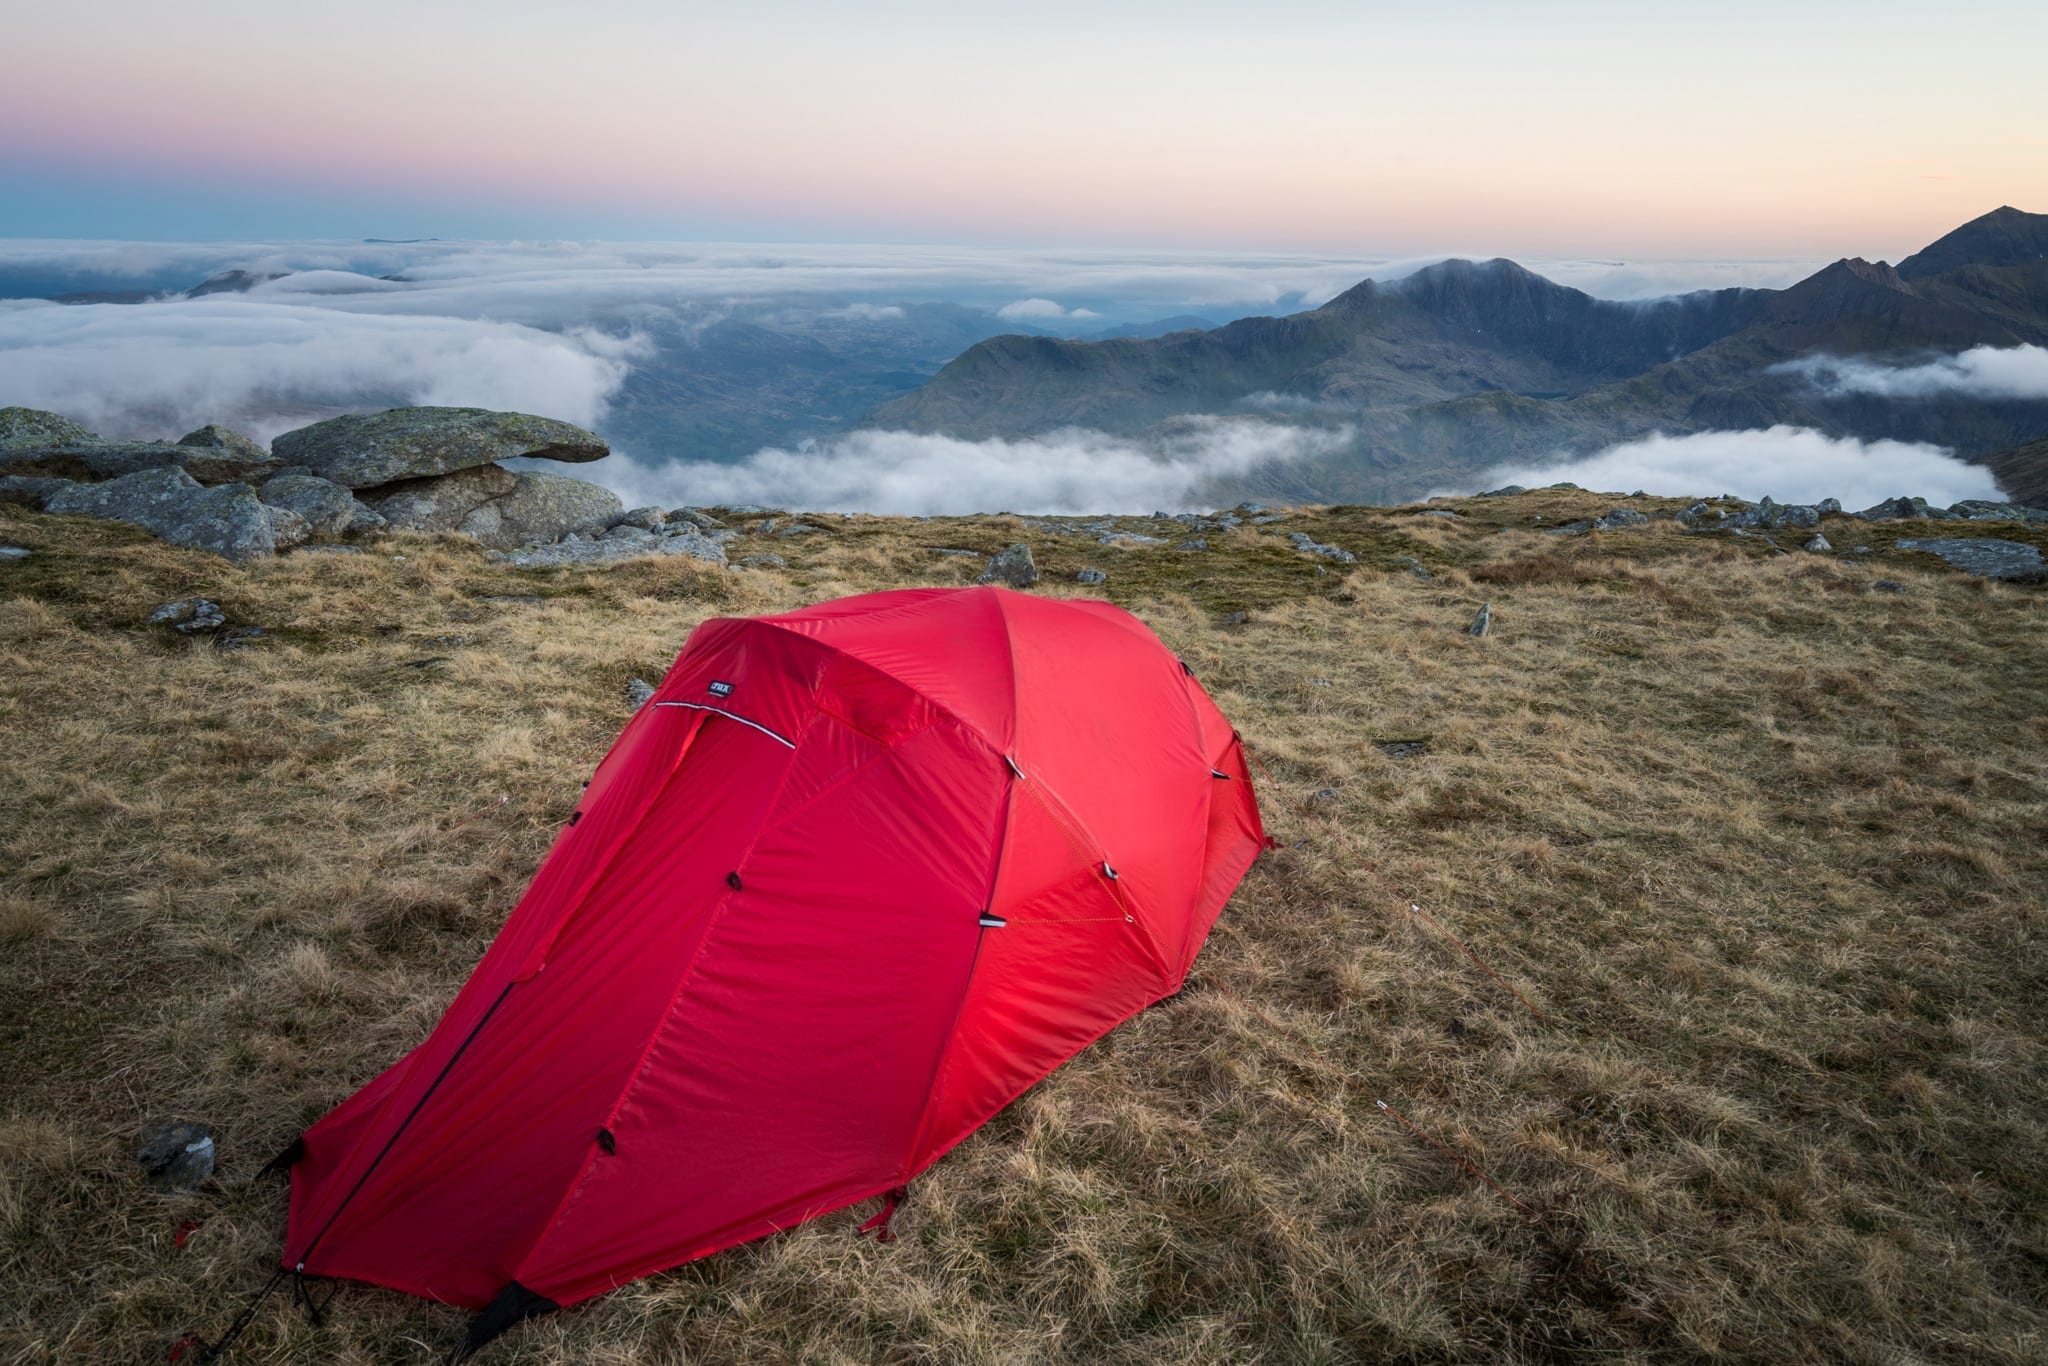 Crux X2 on Glyder Fach - Snowdonia Wild Camping Photography Workshop